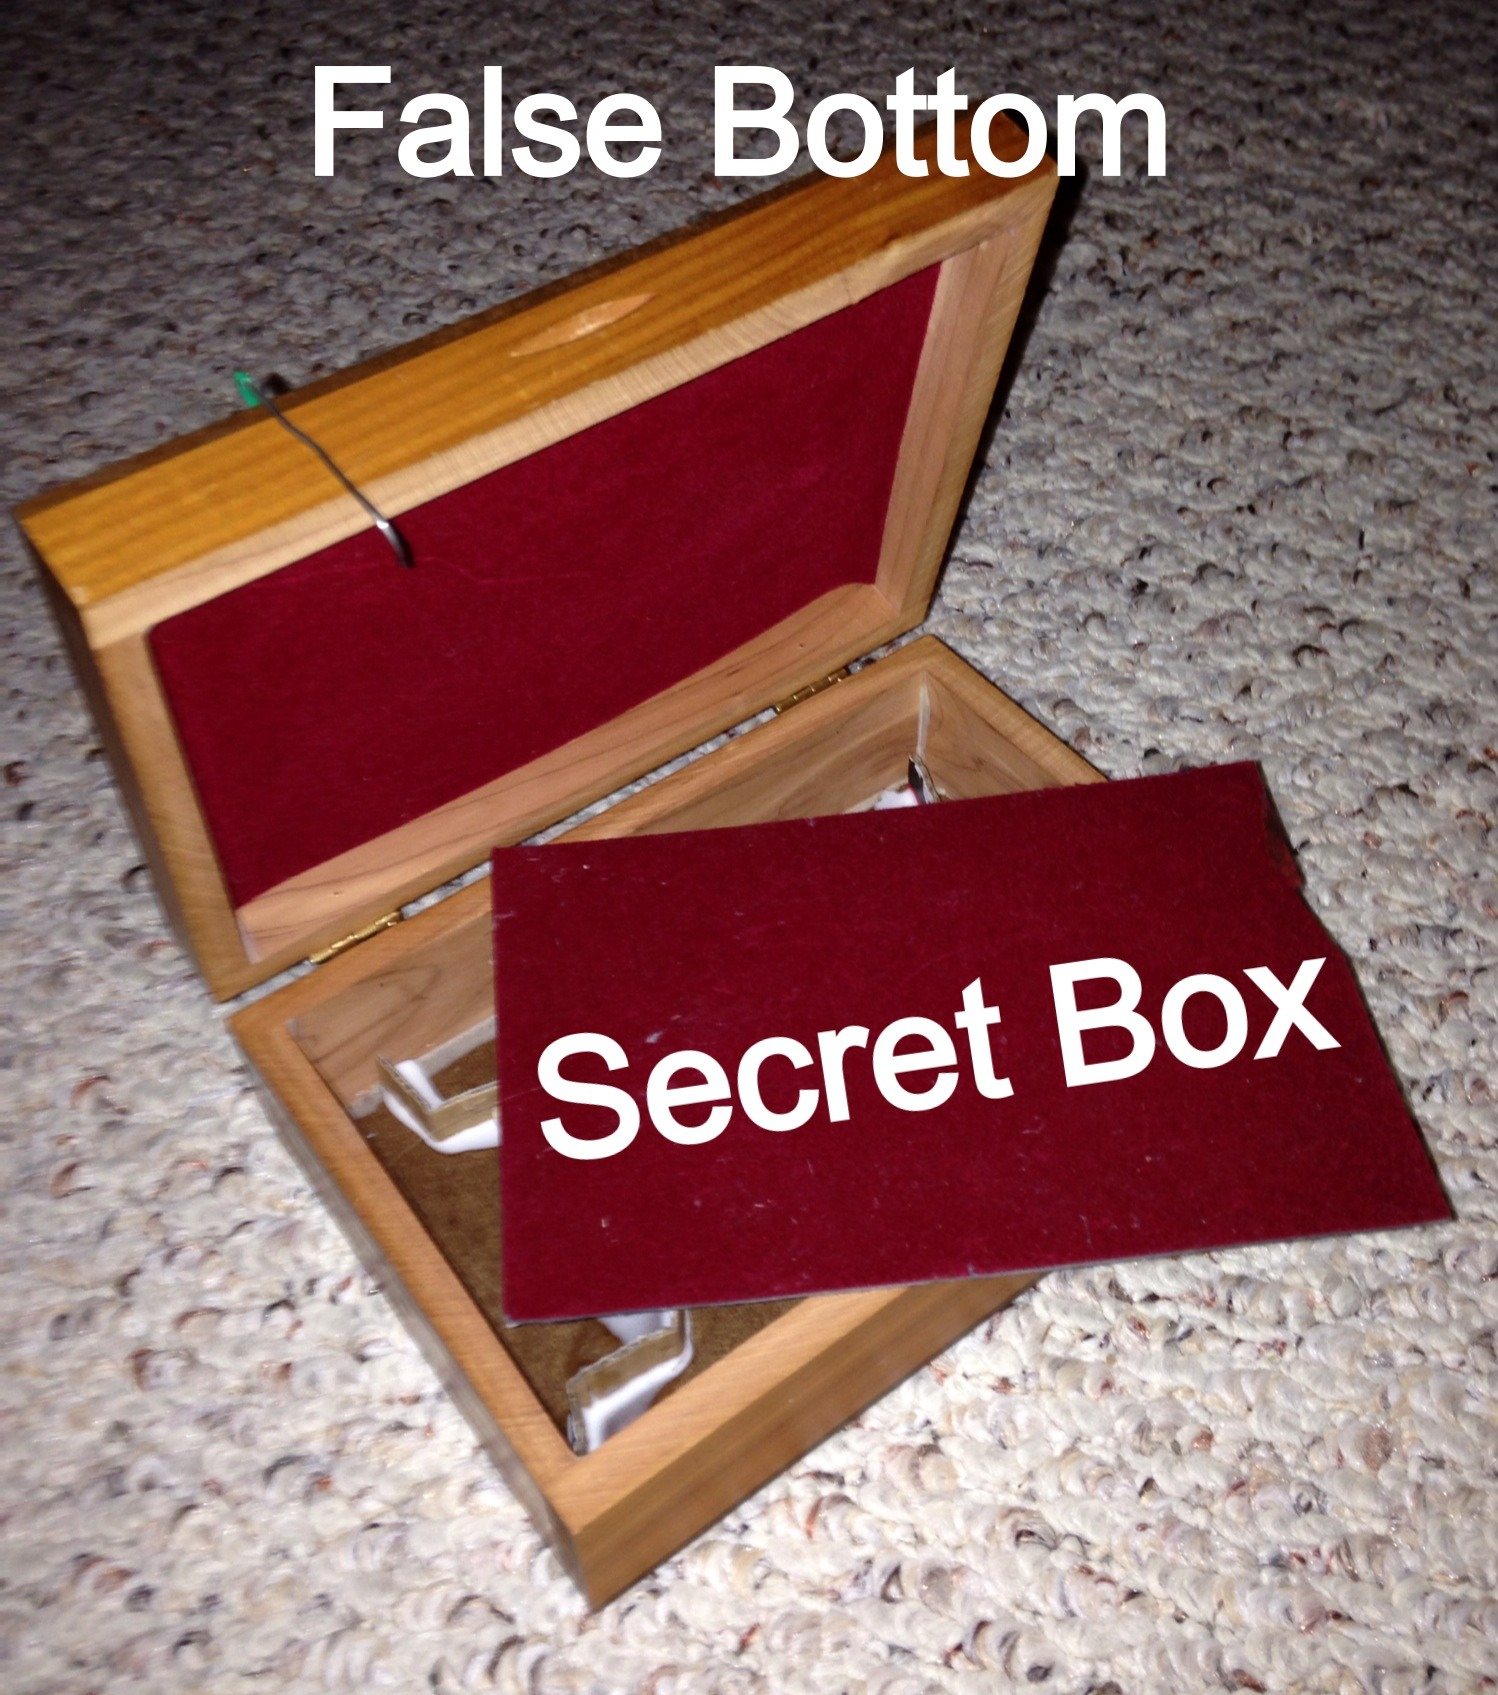 False Bottom Wooden Box